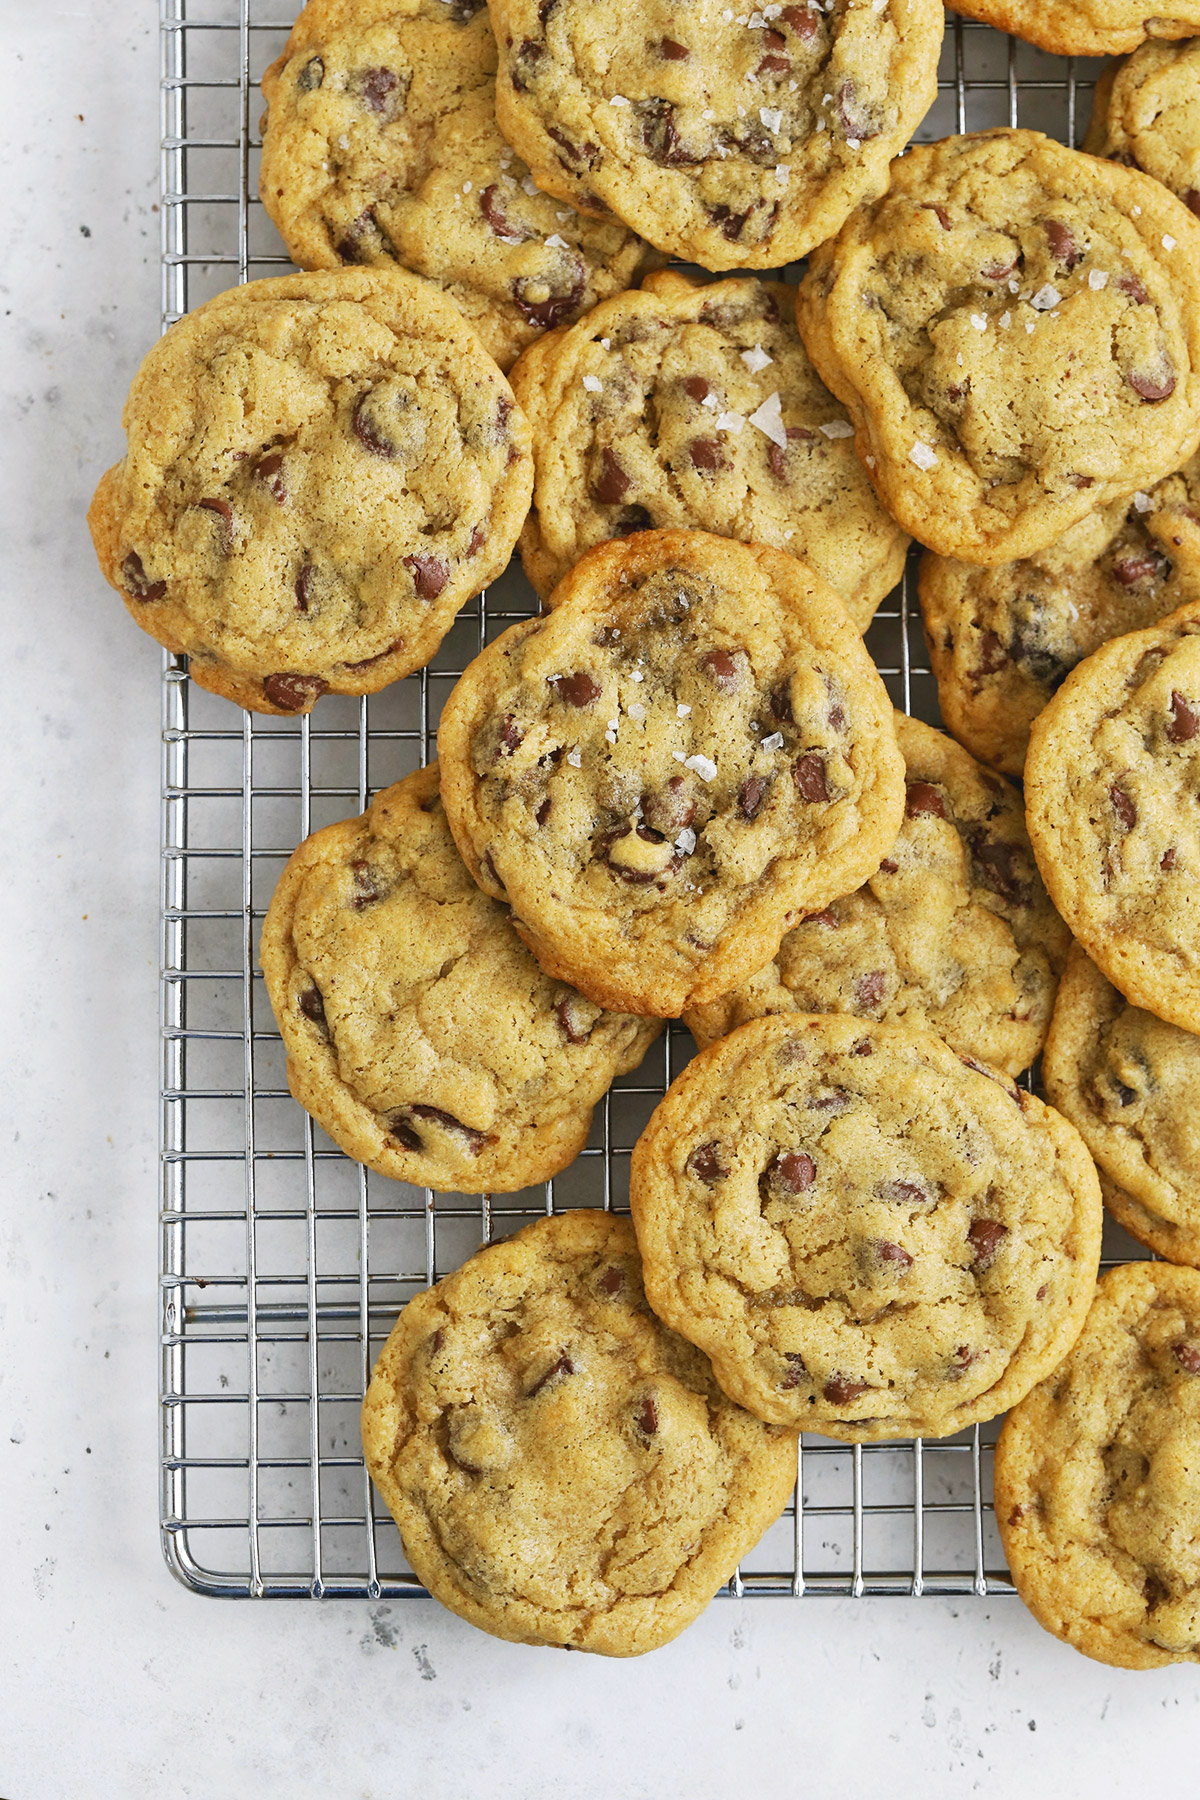 Gluten-Free Chocolate Chip Cookies cooling on a cooling rack